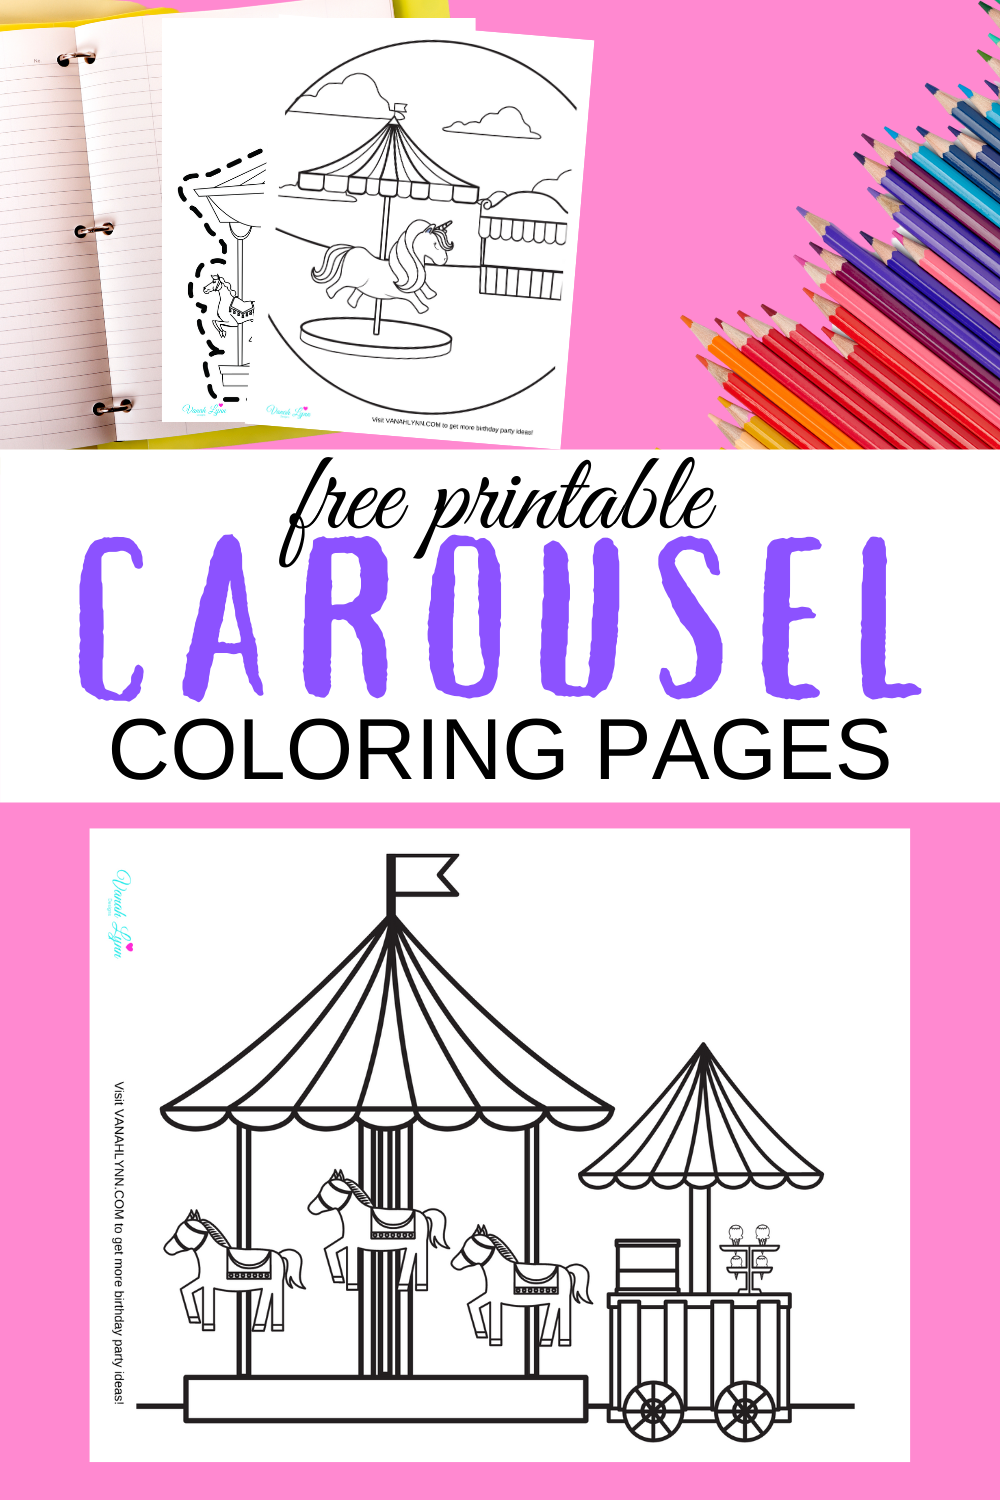 free printable carousel coloring pages for a small child